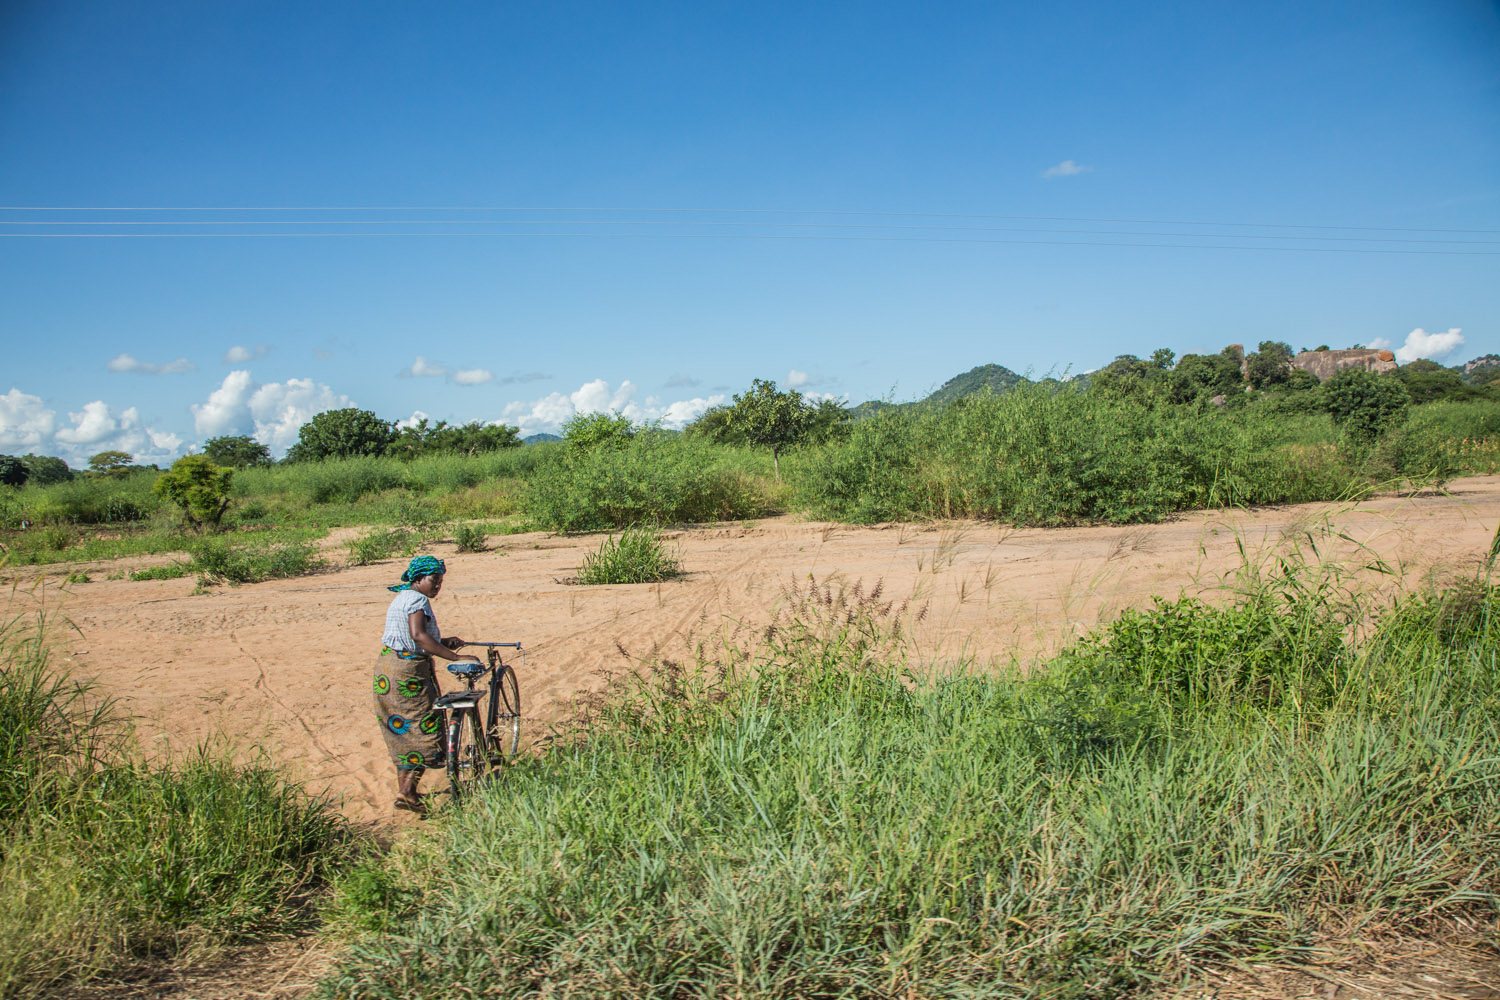 Due to high population growth, rapid deforestation and widespread soil erosion, Malawi's agriculture is particularly vulnerable to climate change.